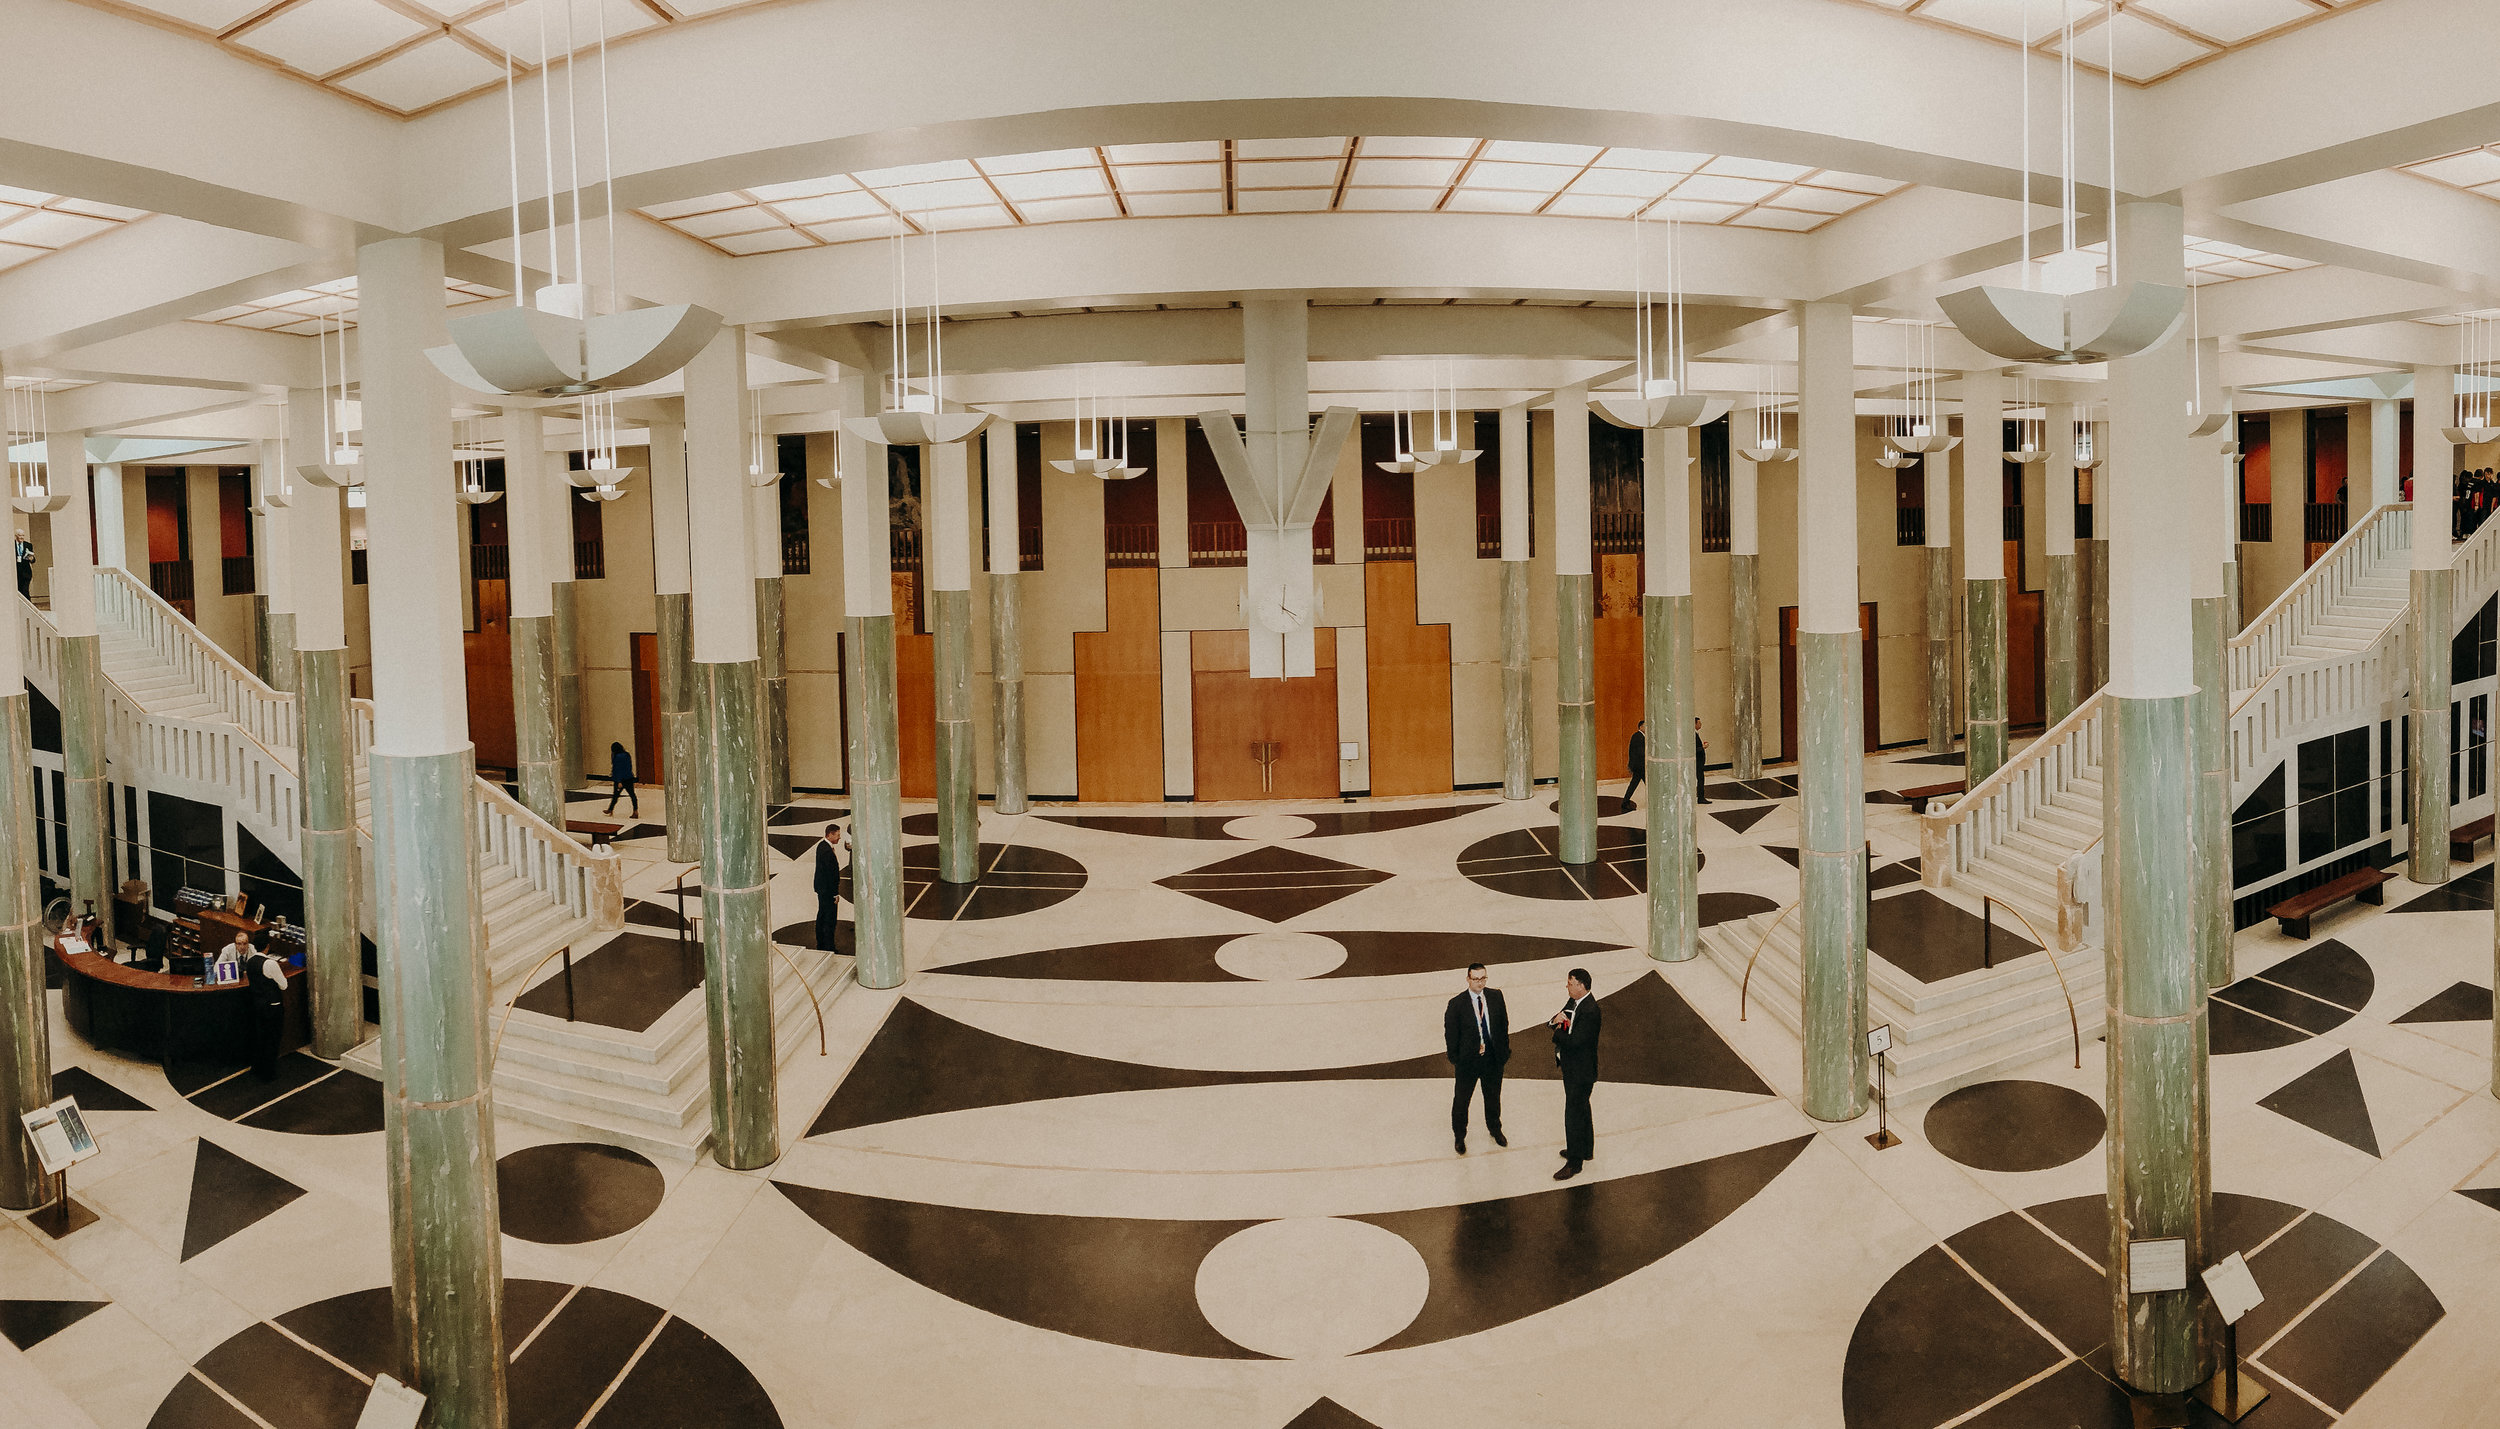 Panorama taken inside the new Parliament House.